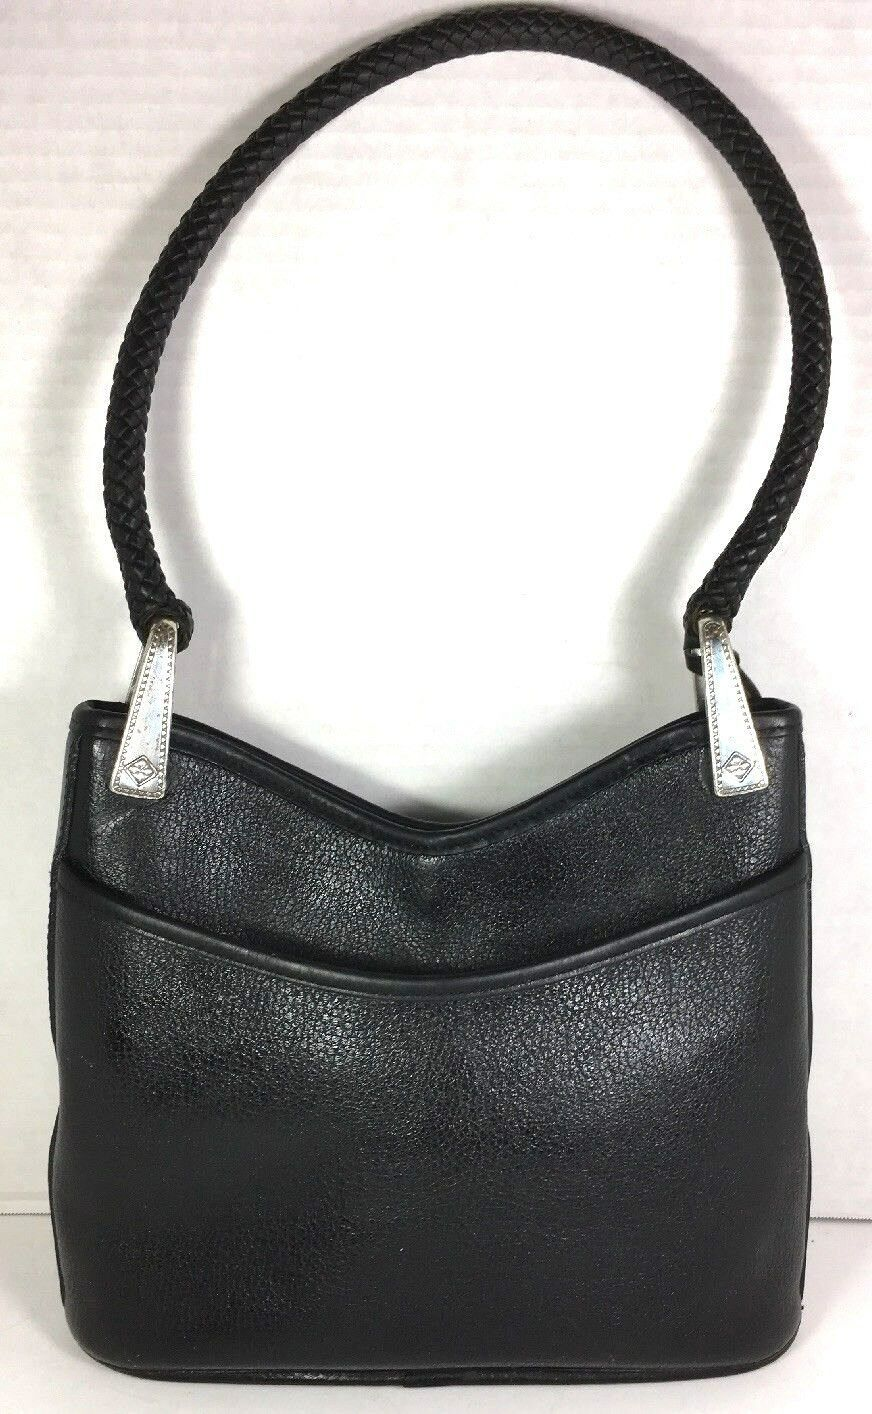 Brighton Vtg Black Pebbled Leather Reptile Print Trim Braided Strap Shoulder Bag